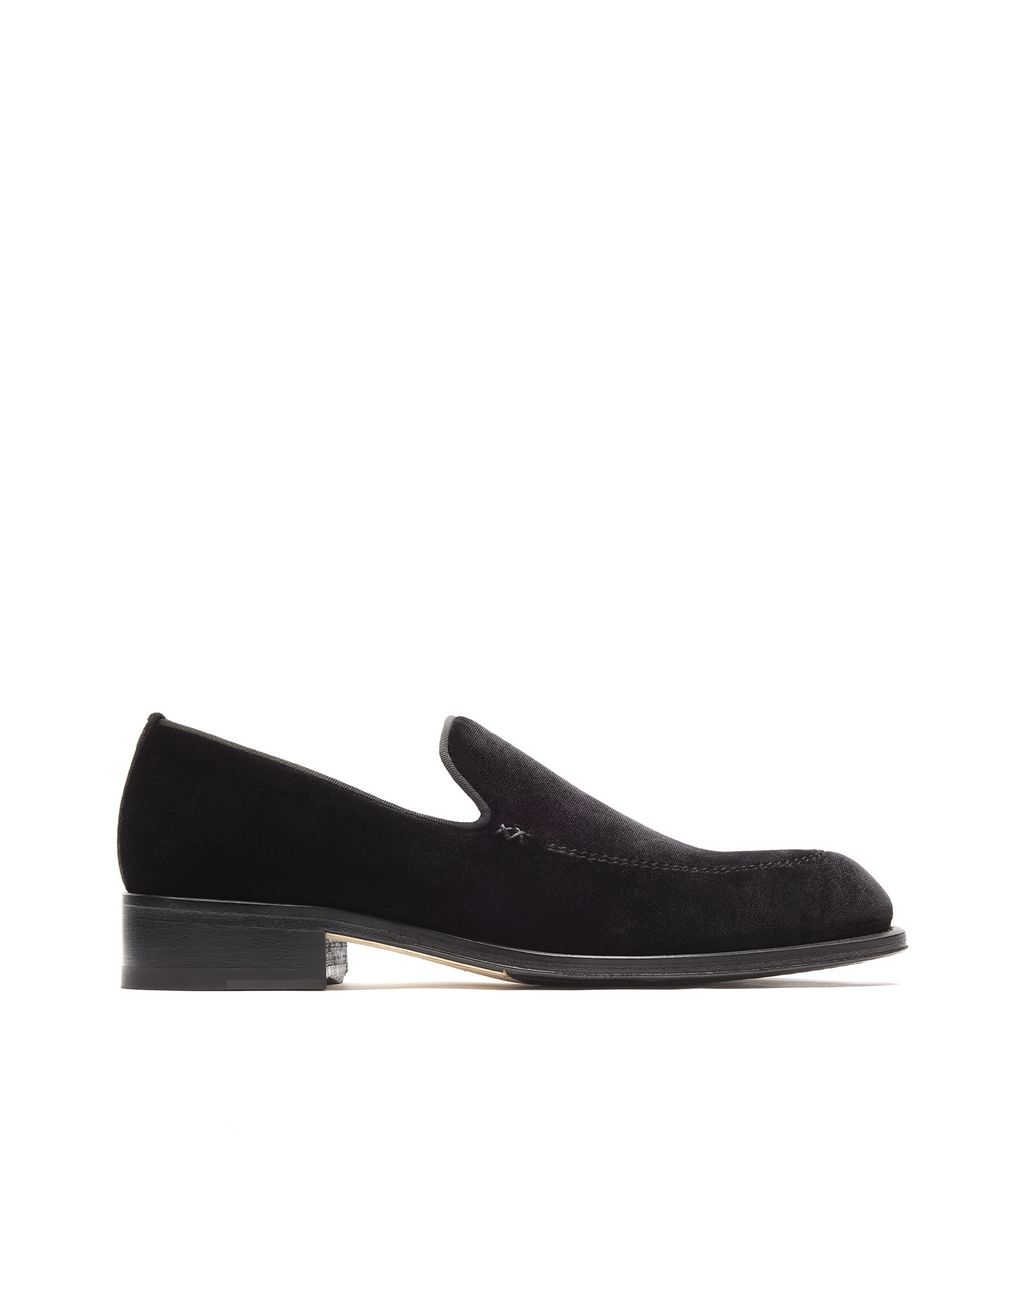 BRIONI Black Velvet Slipper Loafer Loafers U f